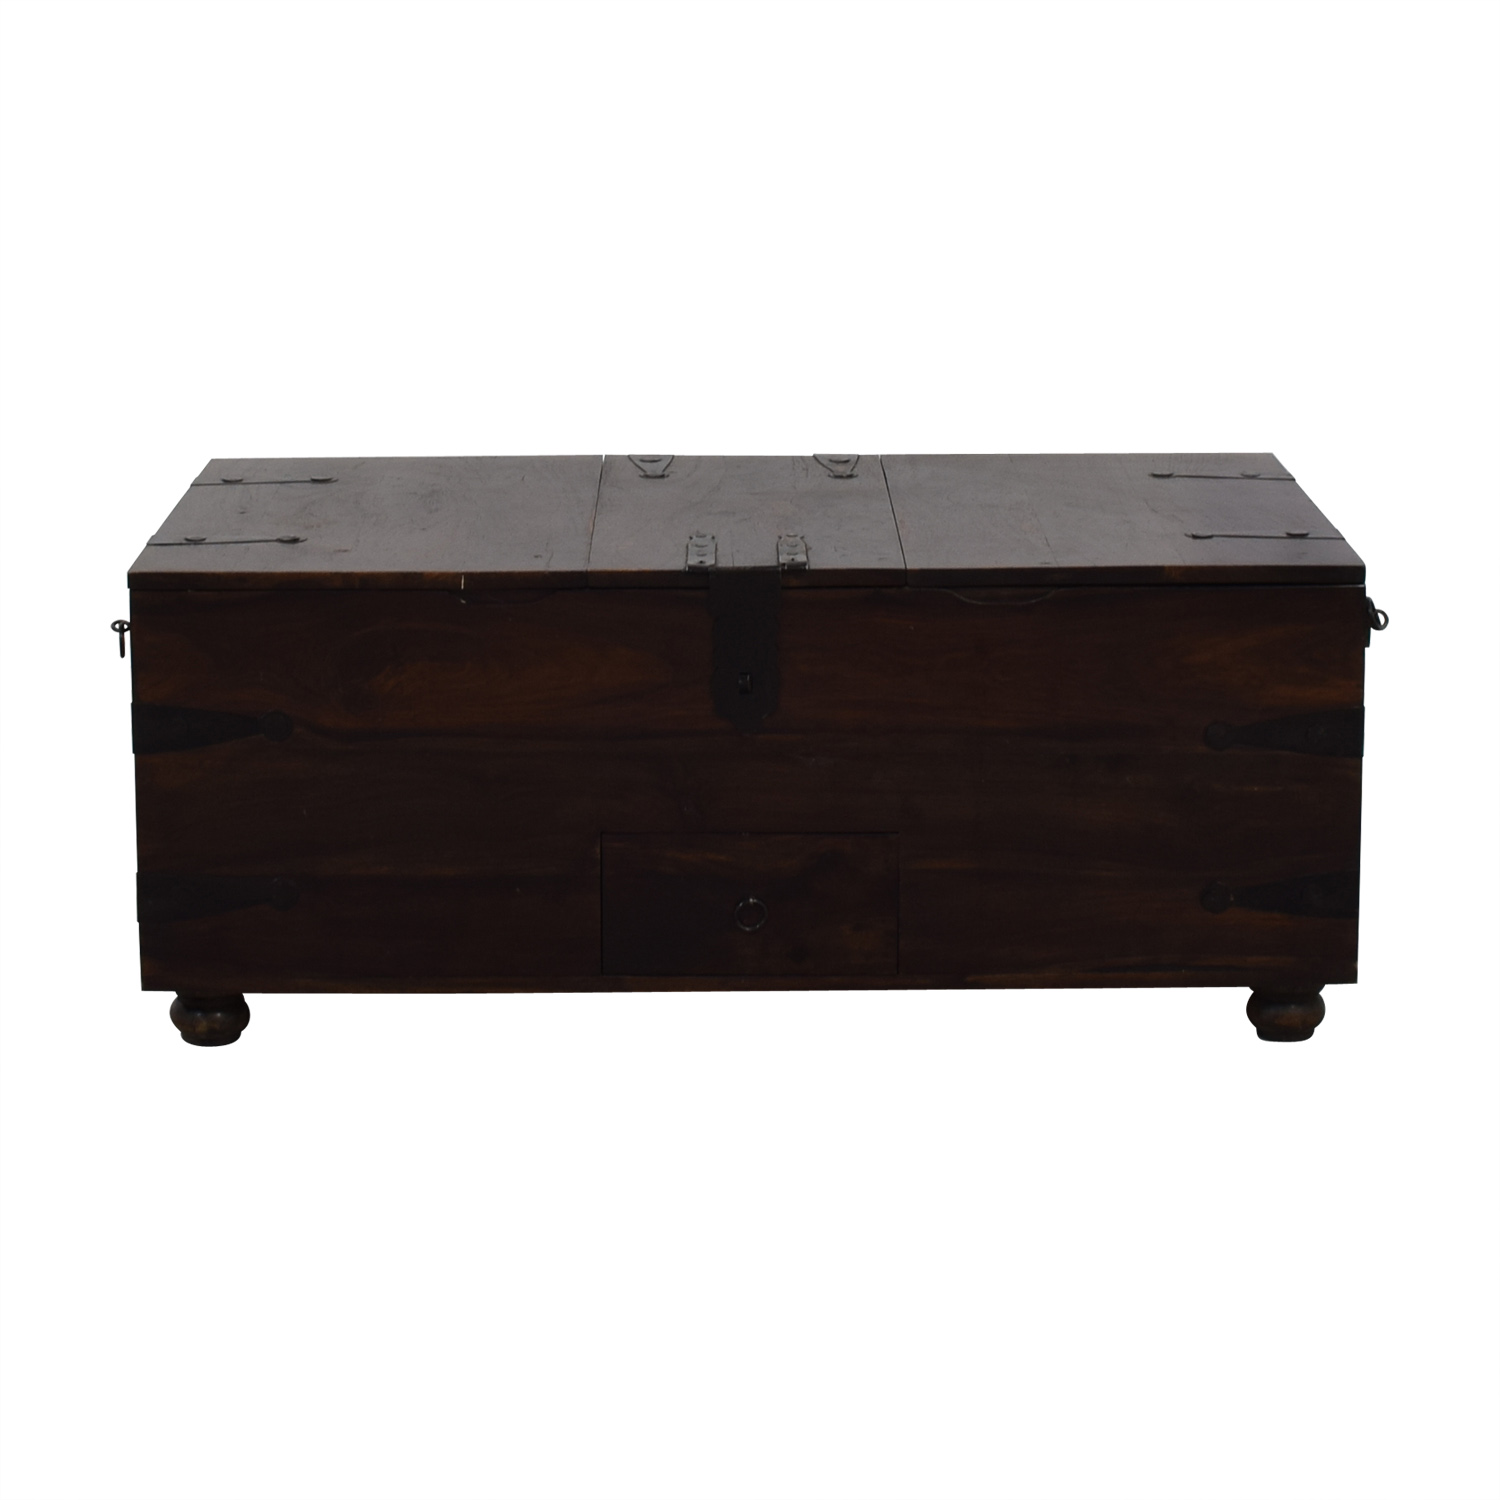 buy Crate & Barrel Crate & Barrel Trunk Storage Coffee Table online